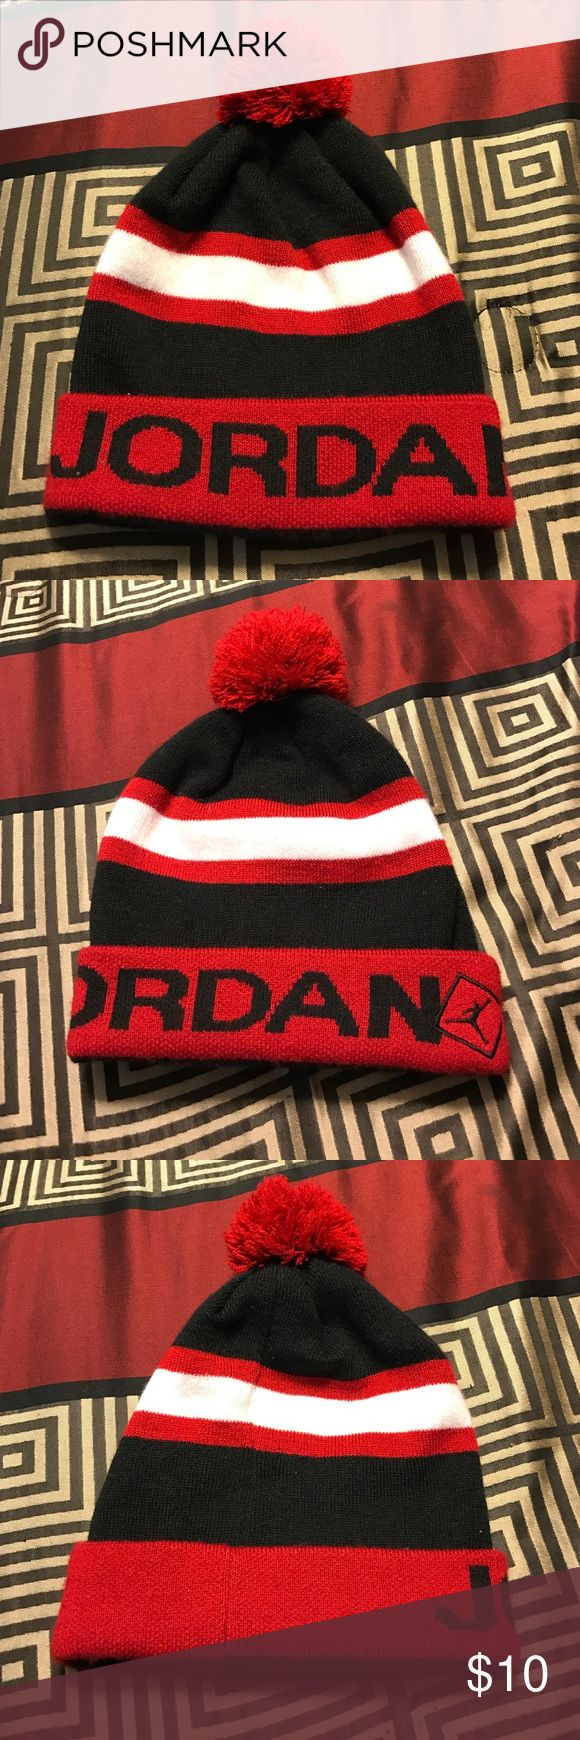 Authentic Jordan Beanie. EUC. Black and Red. This item is an Authentic Jordan Beanie. EUC. Black and Red. OS fits all. No fuzzies or make up stains. No signs of wear. Don't miss out. Jordan Accessories Hats